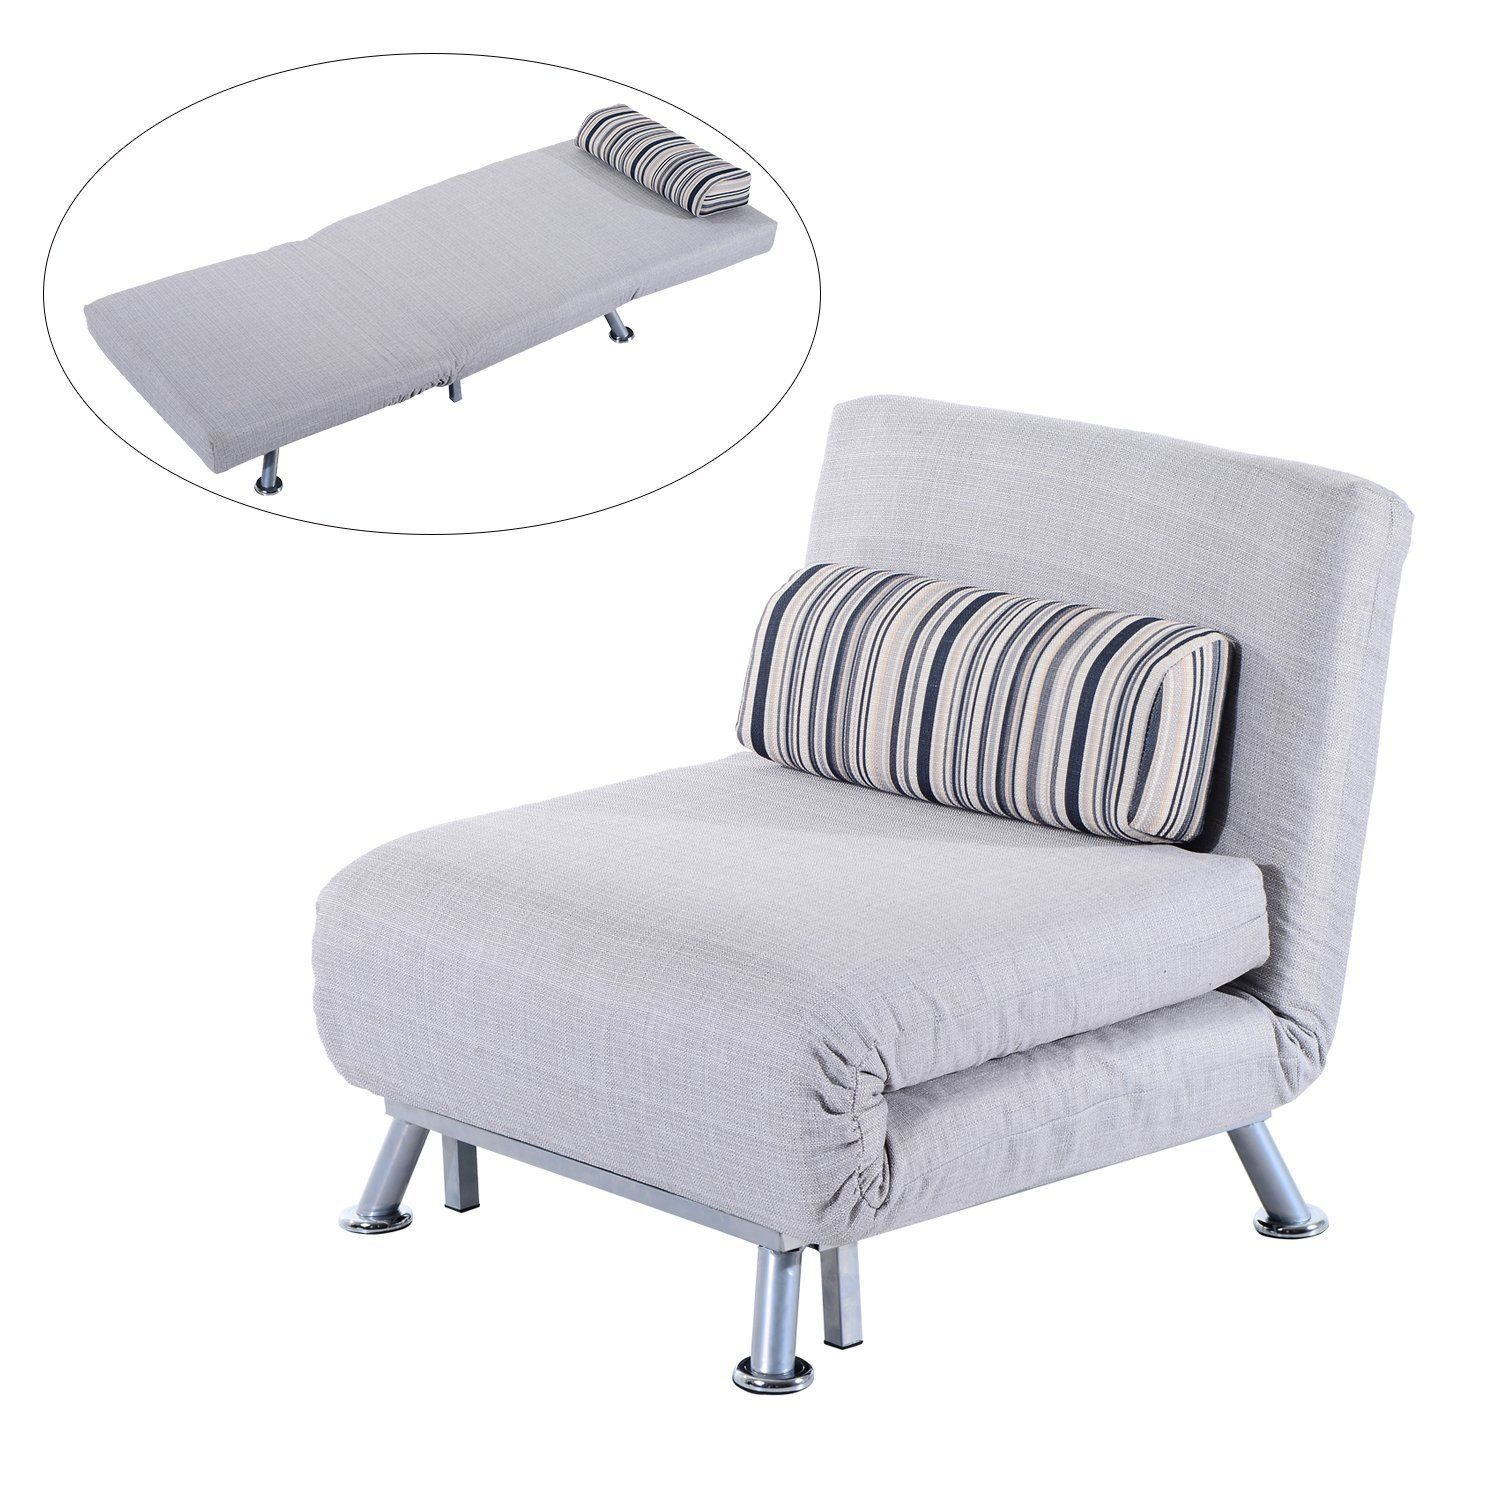 Fold Out Futon Sofa Bed Single Sofa Sleeper Couch